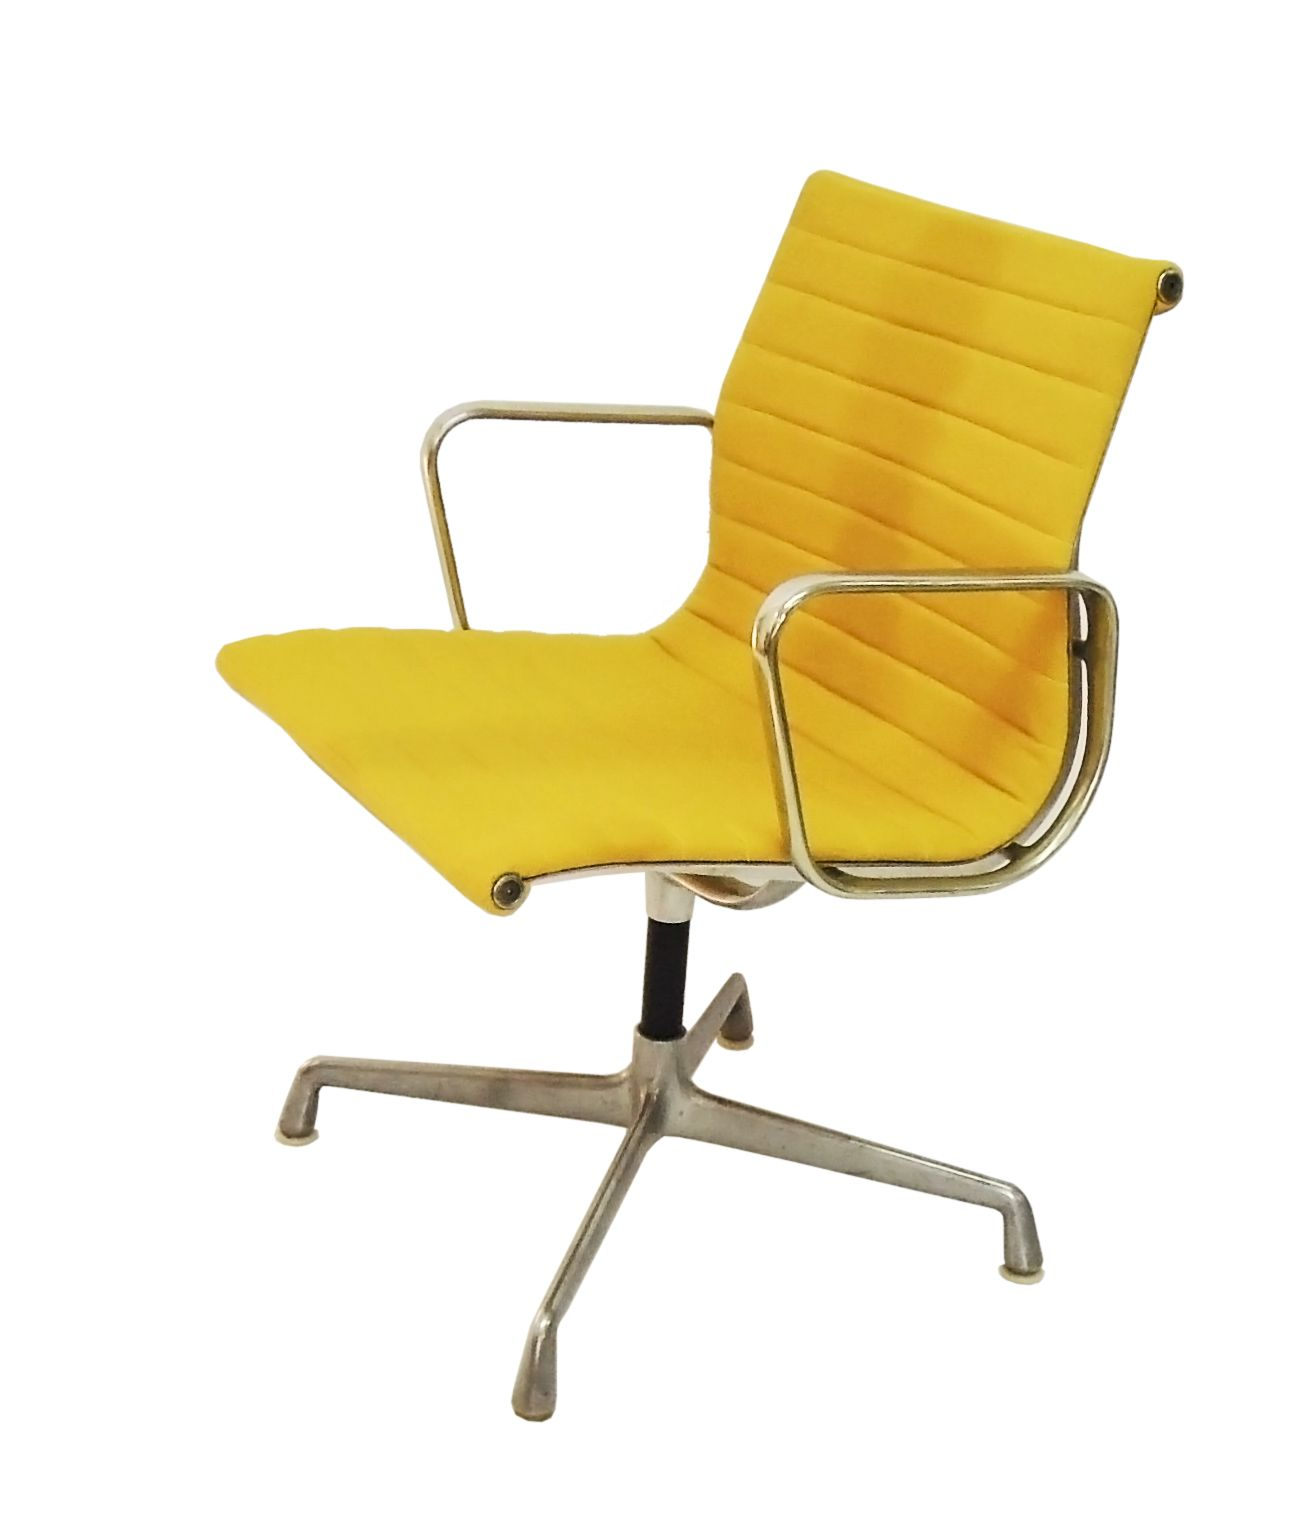 Eames aluminum group chair we reupholstered